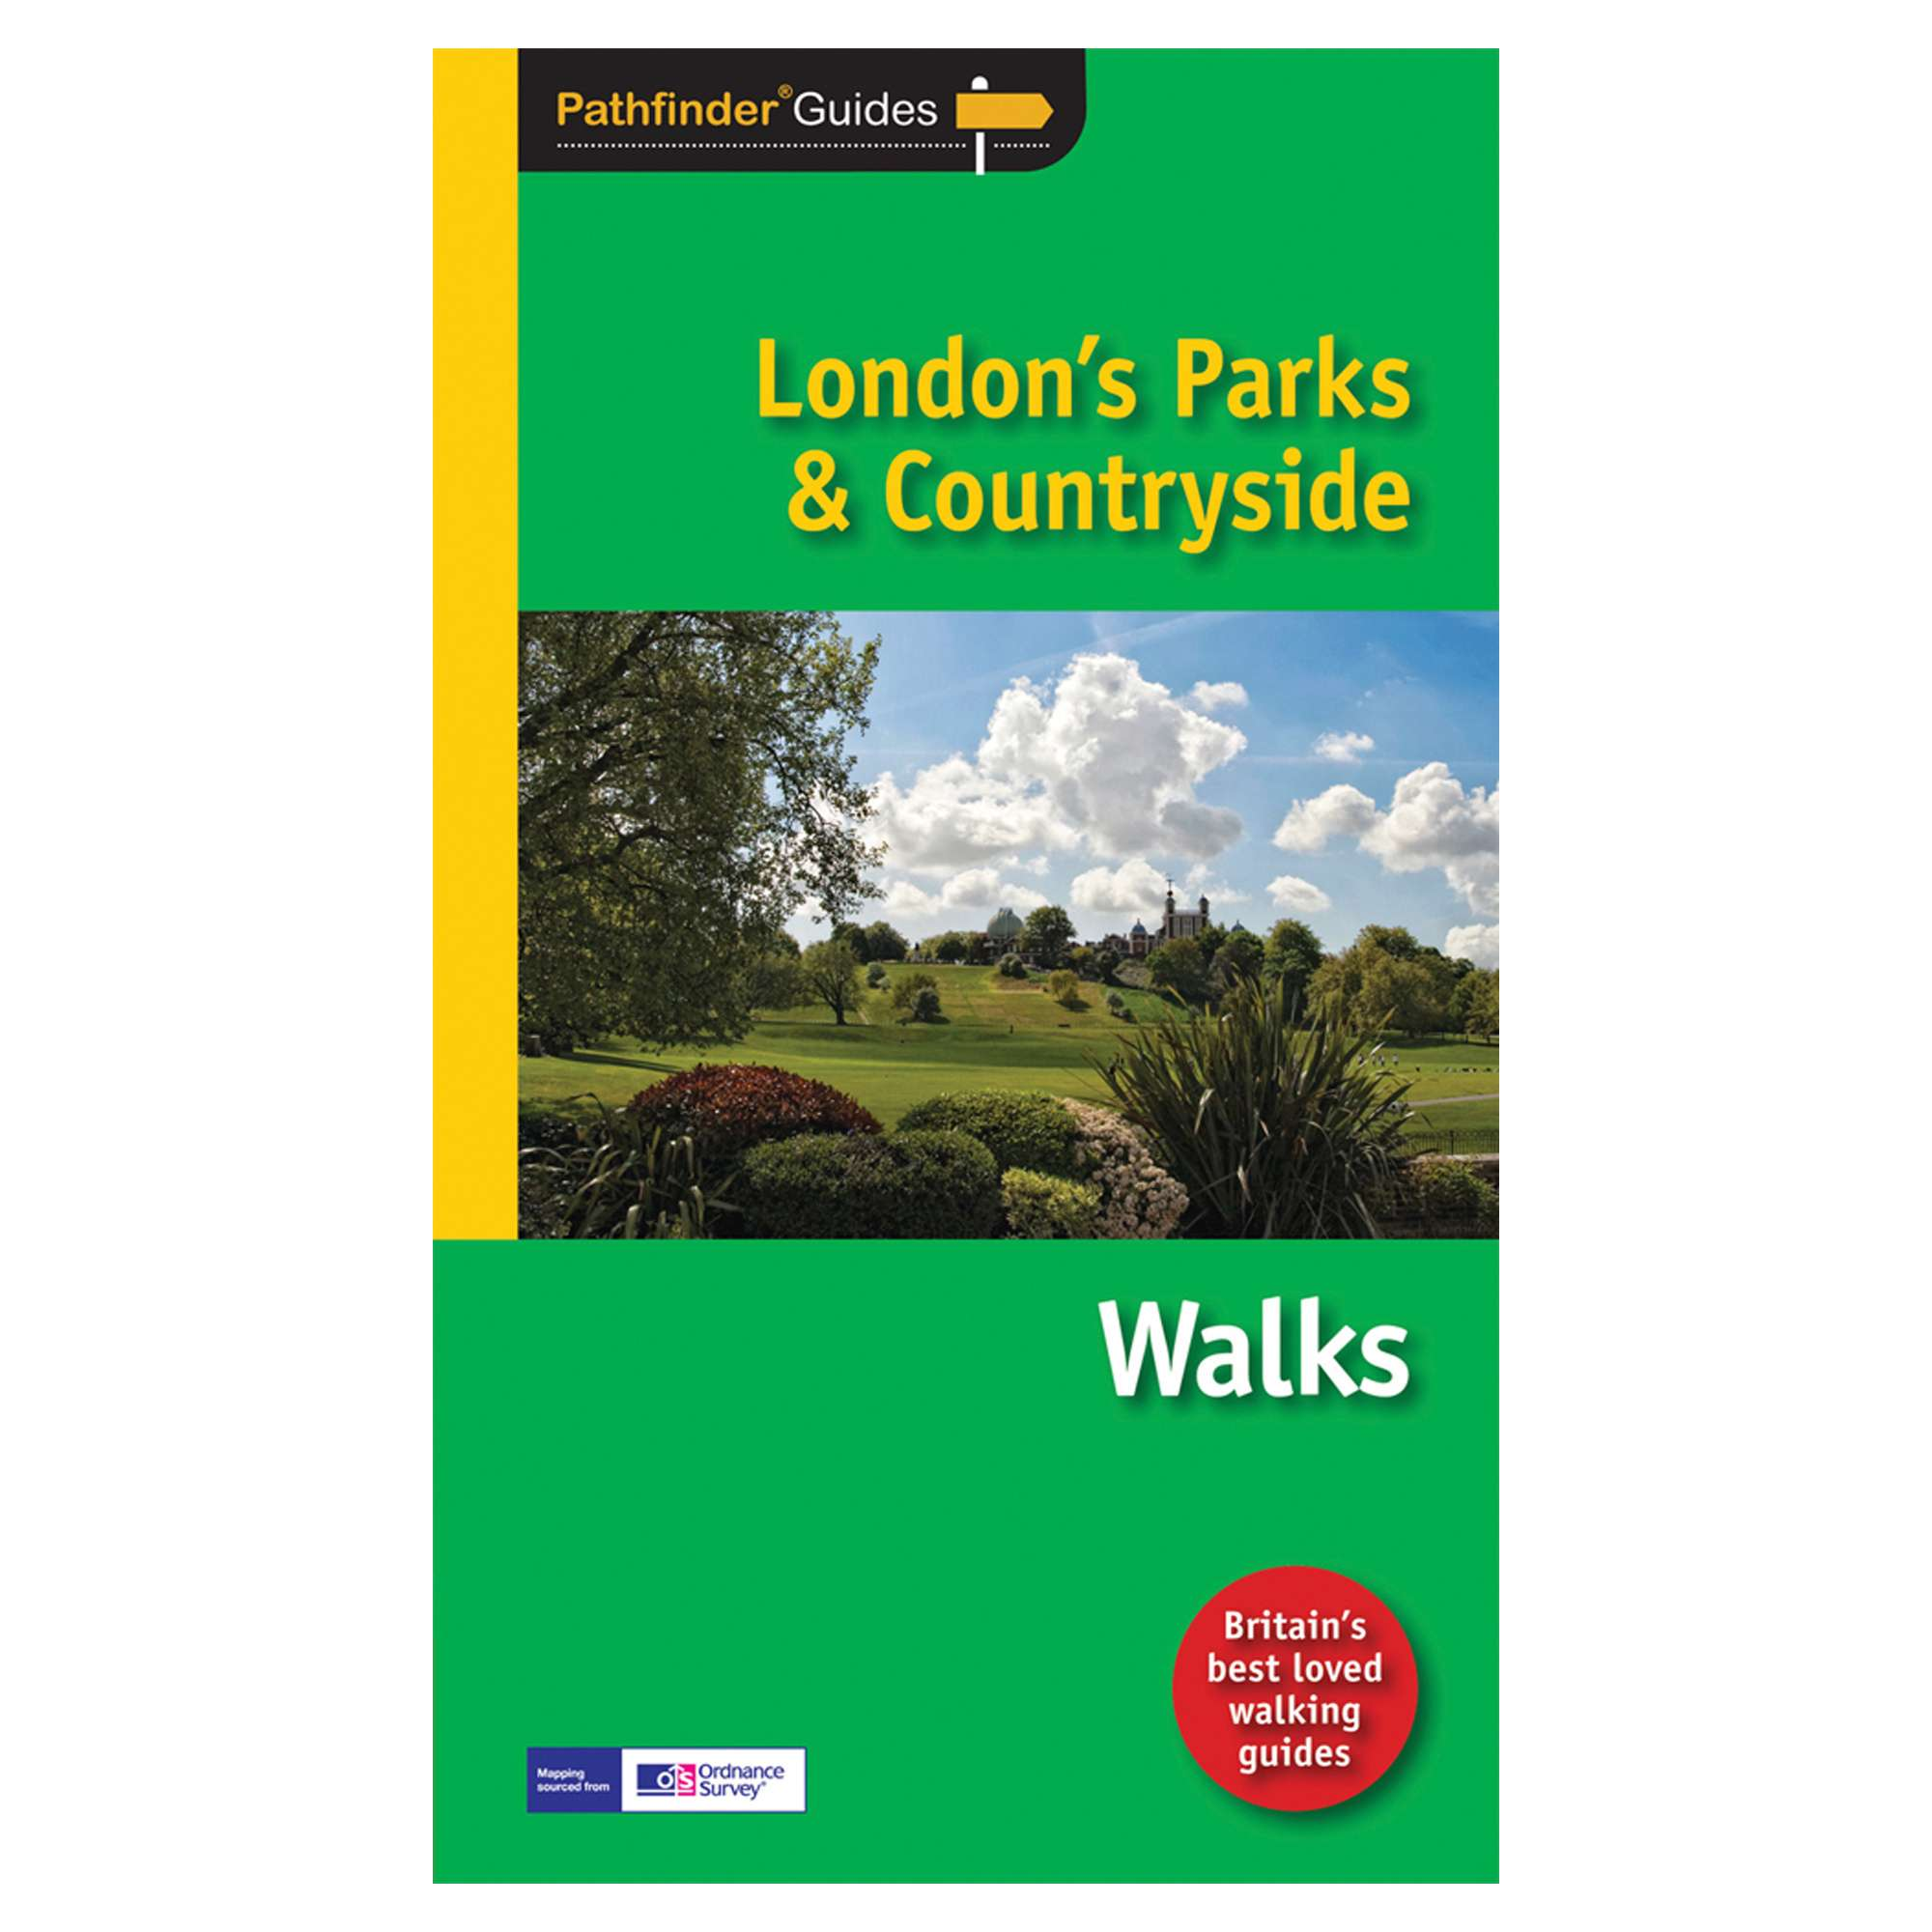 PATHFINDER London's Parks & Countryside: Walks